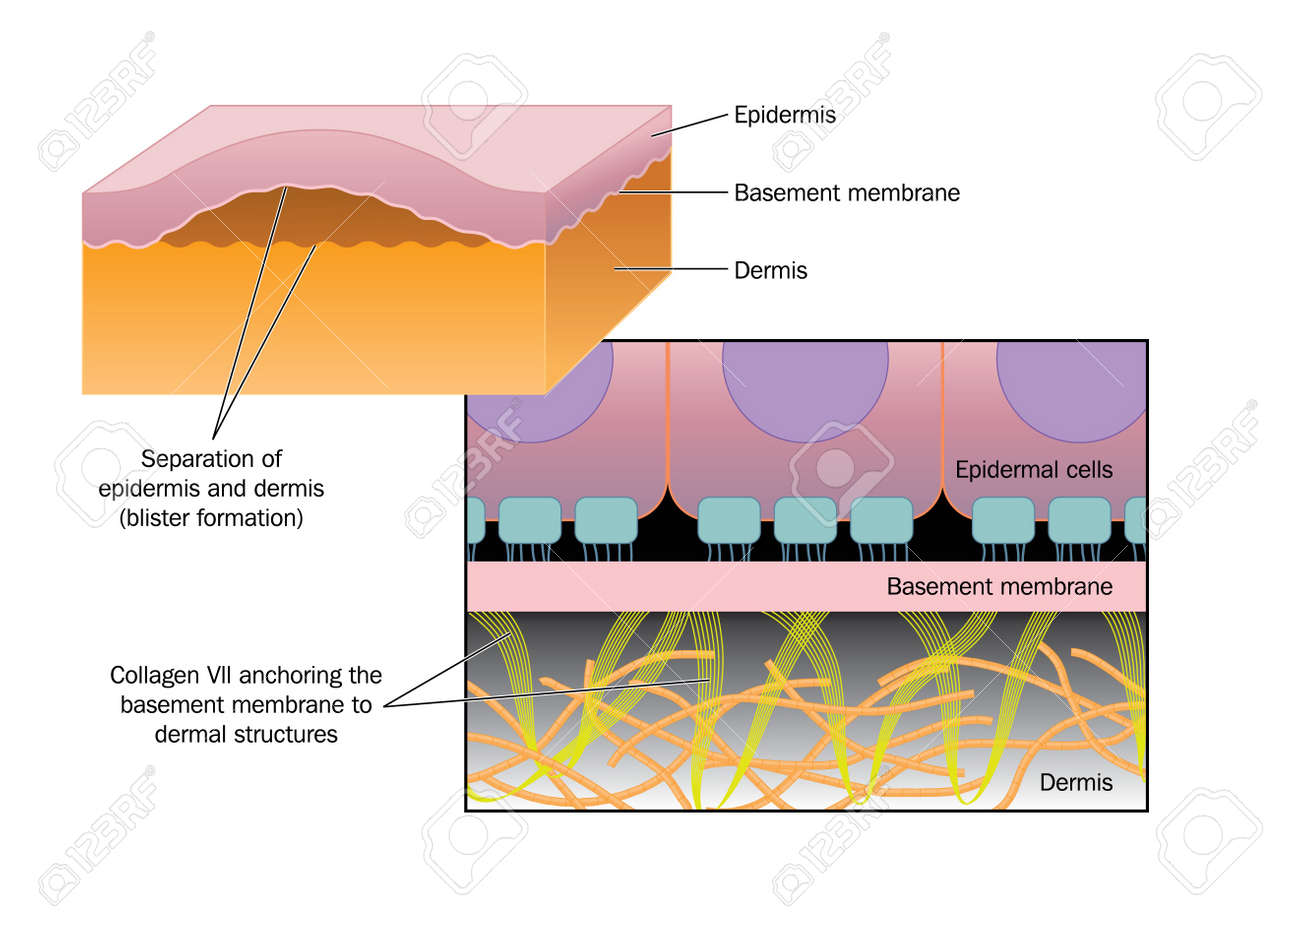 drawing of blister formation in skin disease such as epidermolysis bullosa,  where the epidermis separates